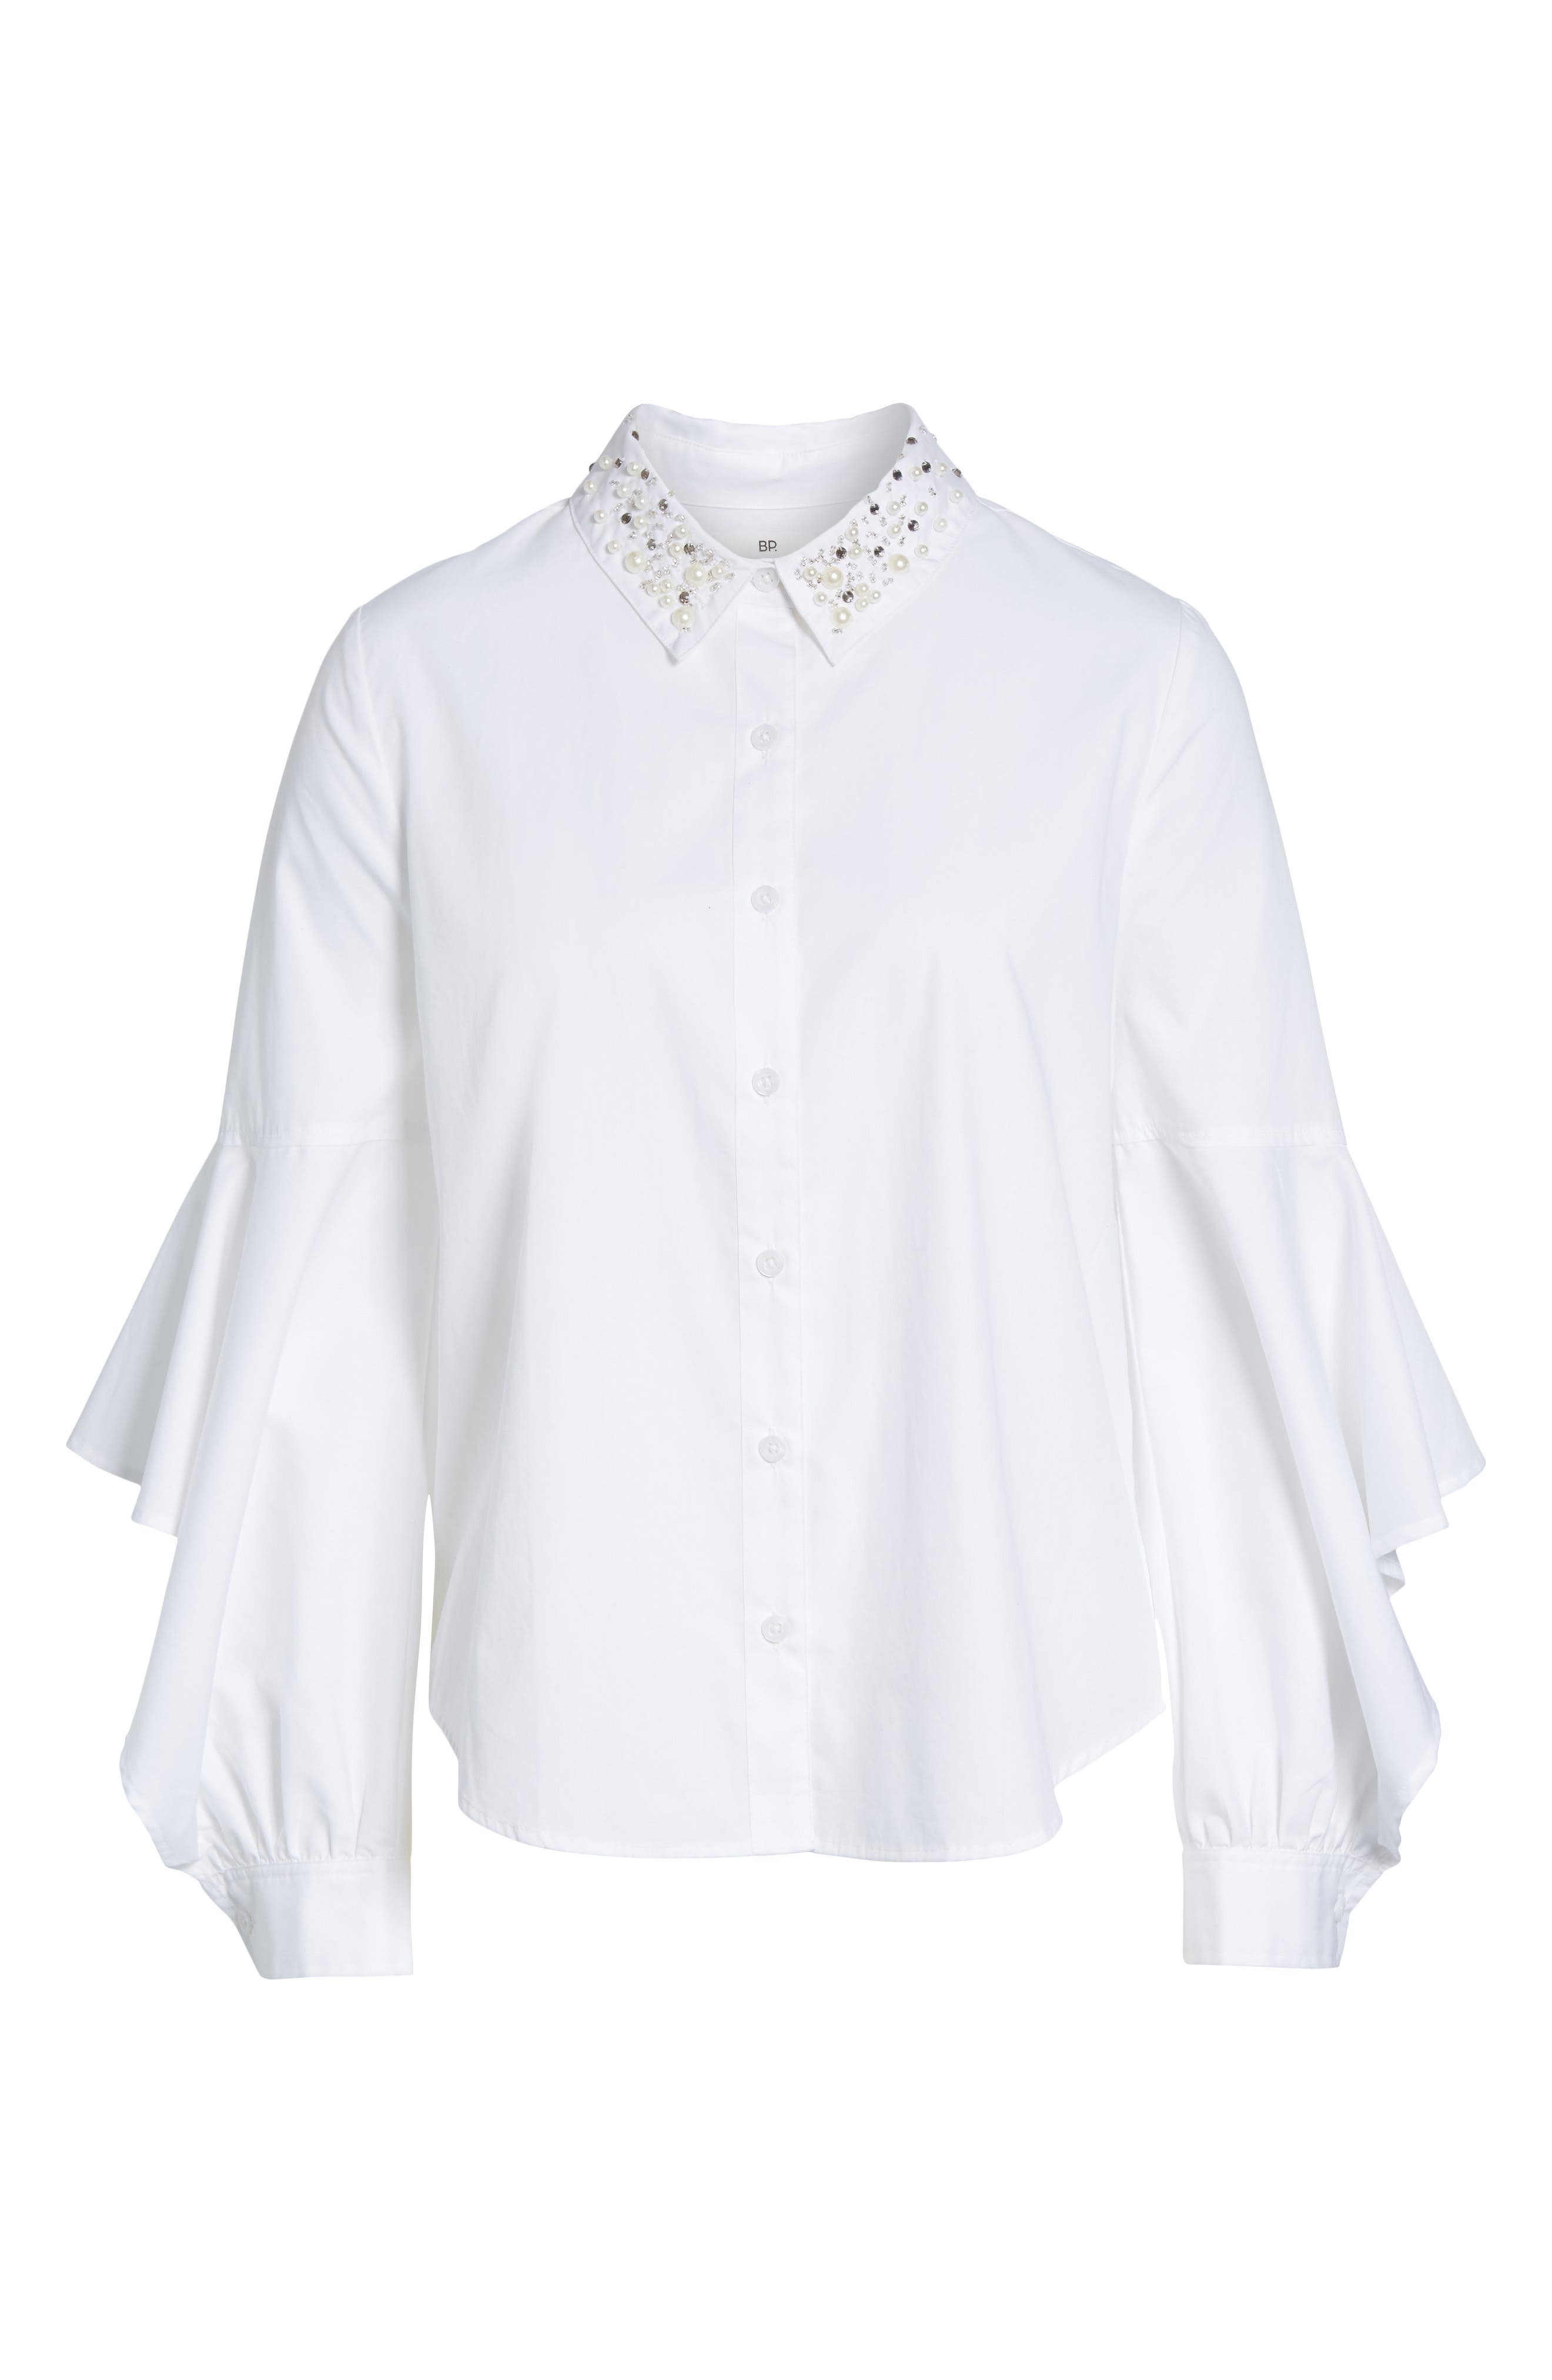 Embellished Ruffle Sleeve Top,                             Alternate thumbnail 6, color,                             White